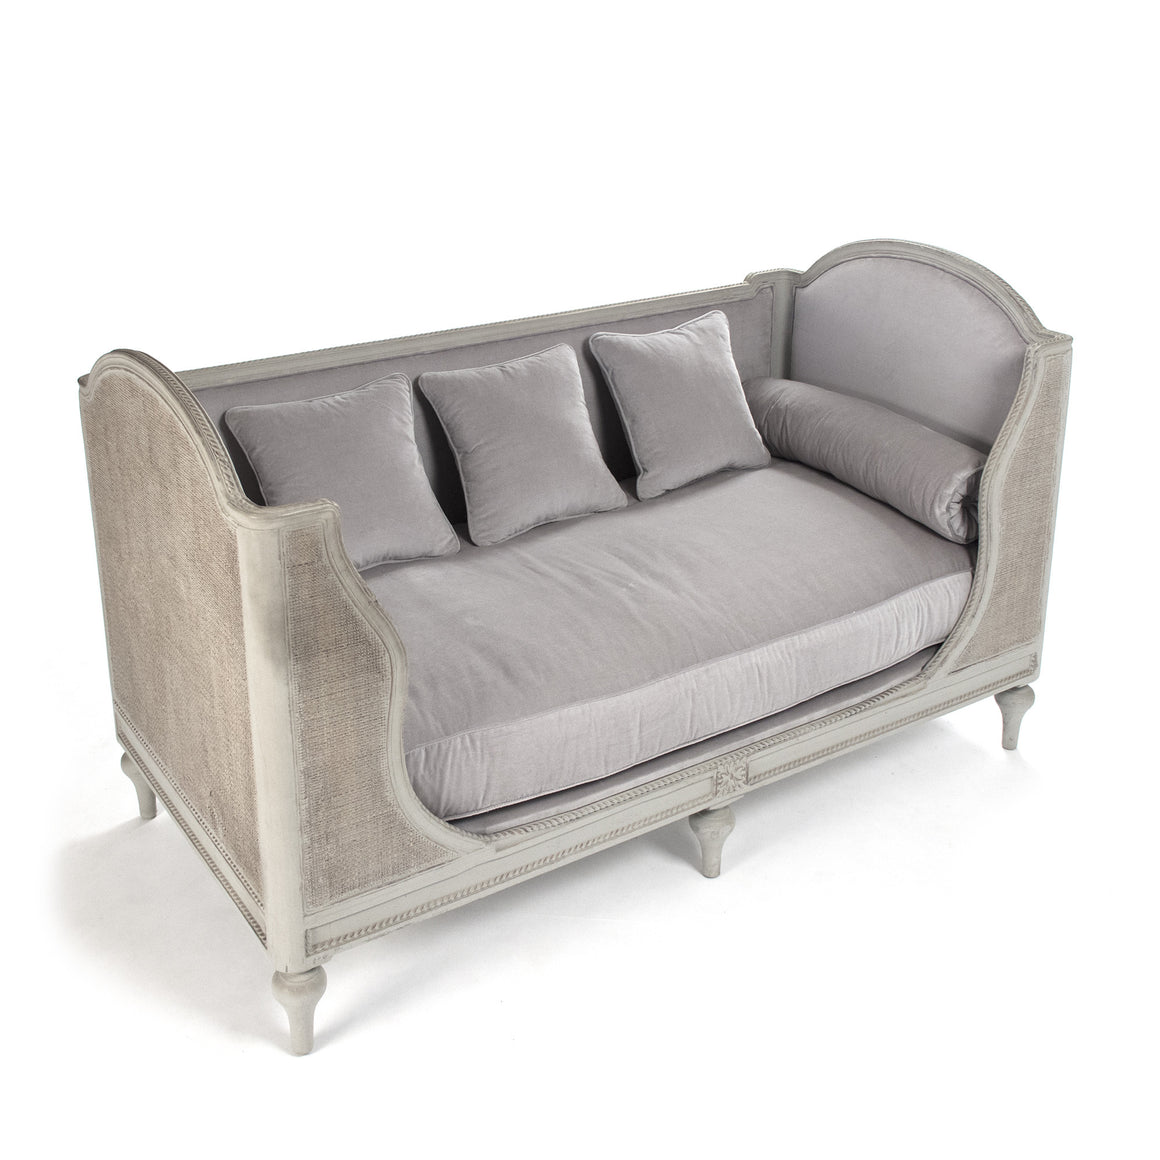 Bed - Winni Daybed